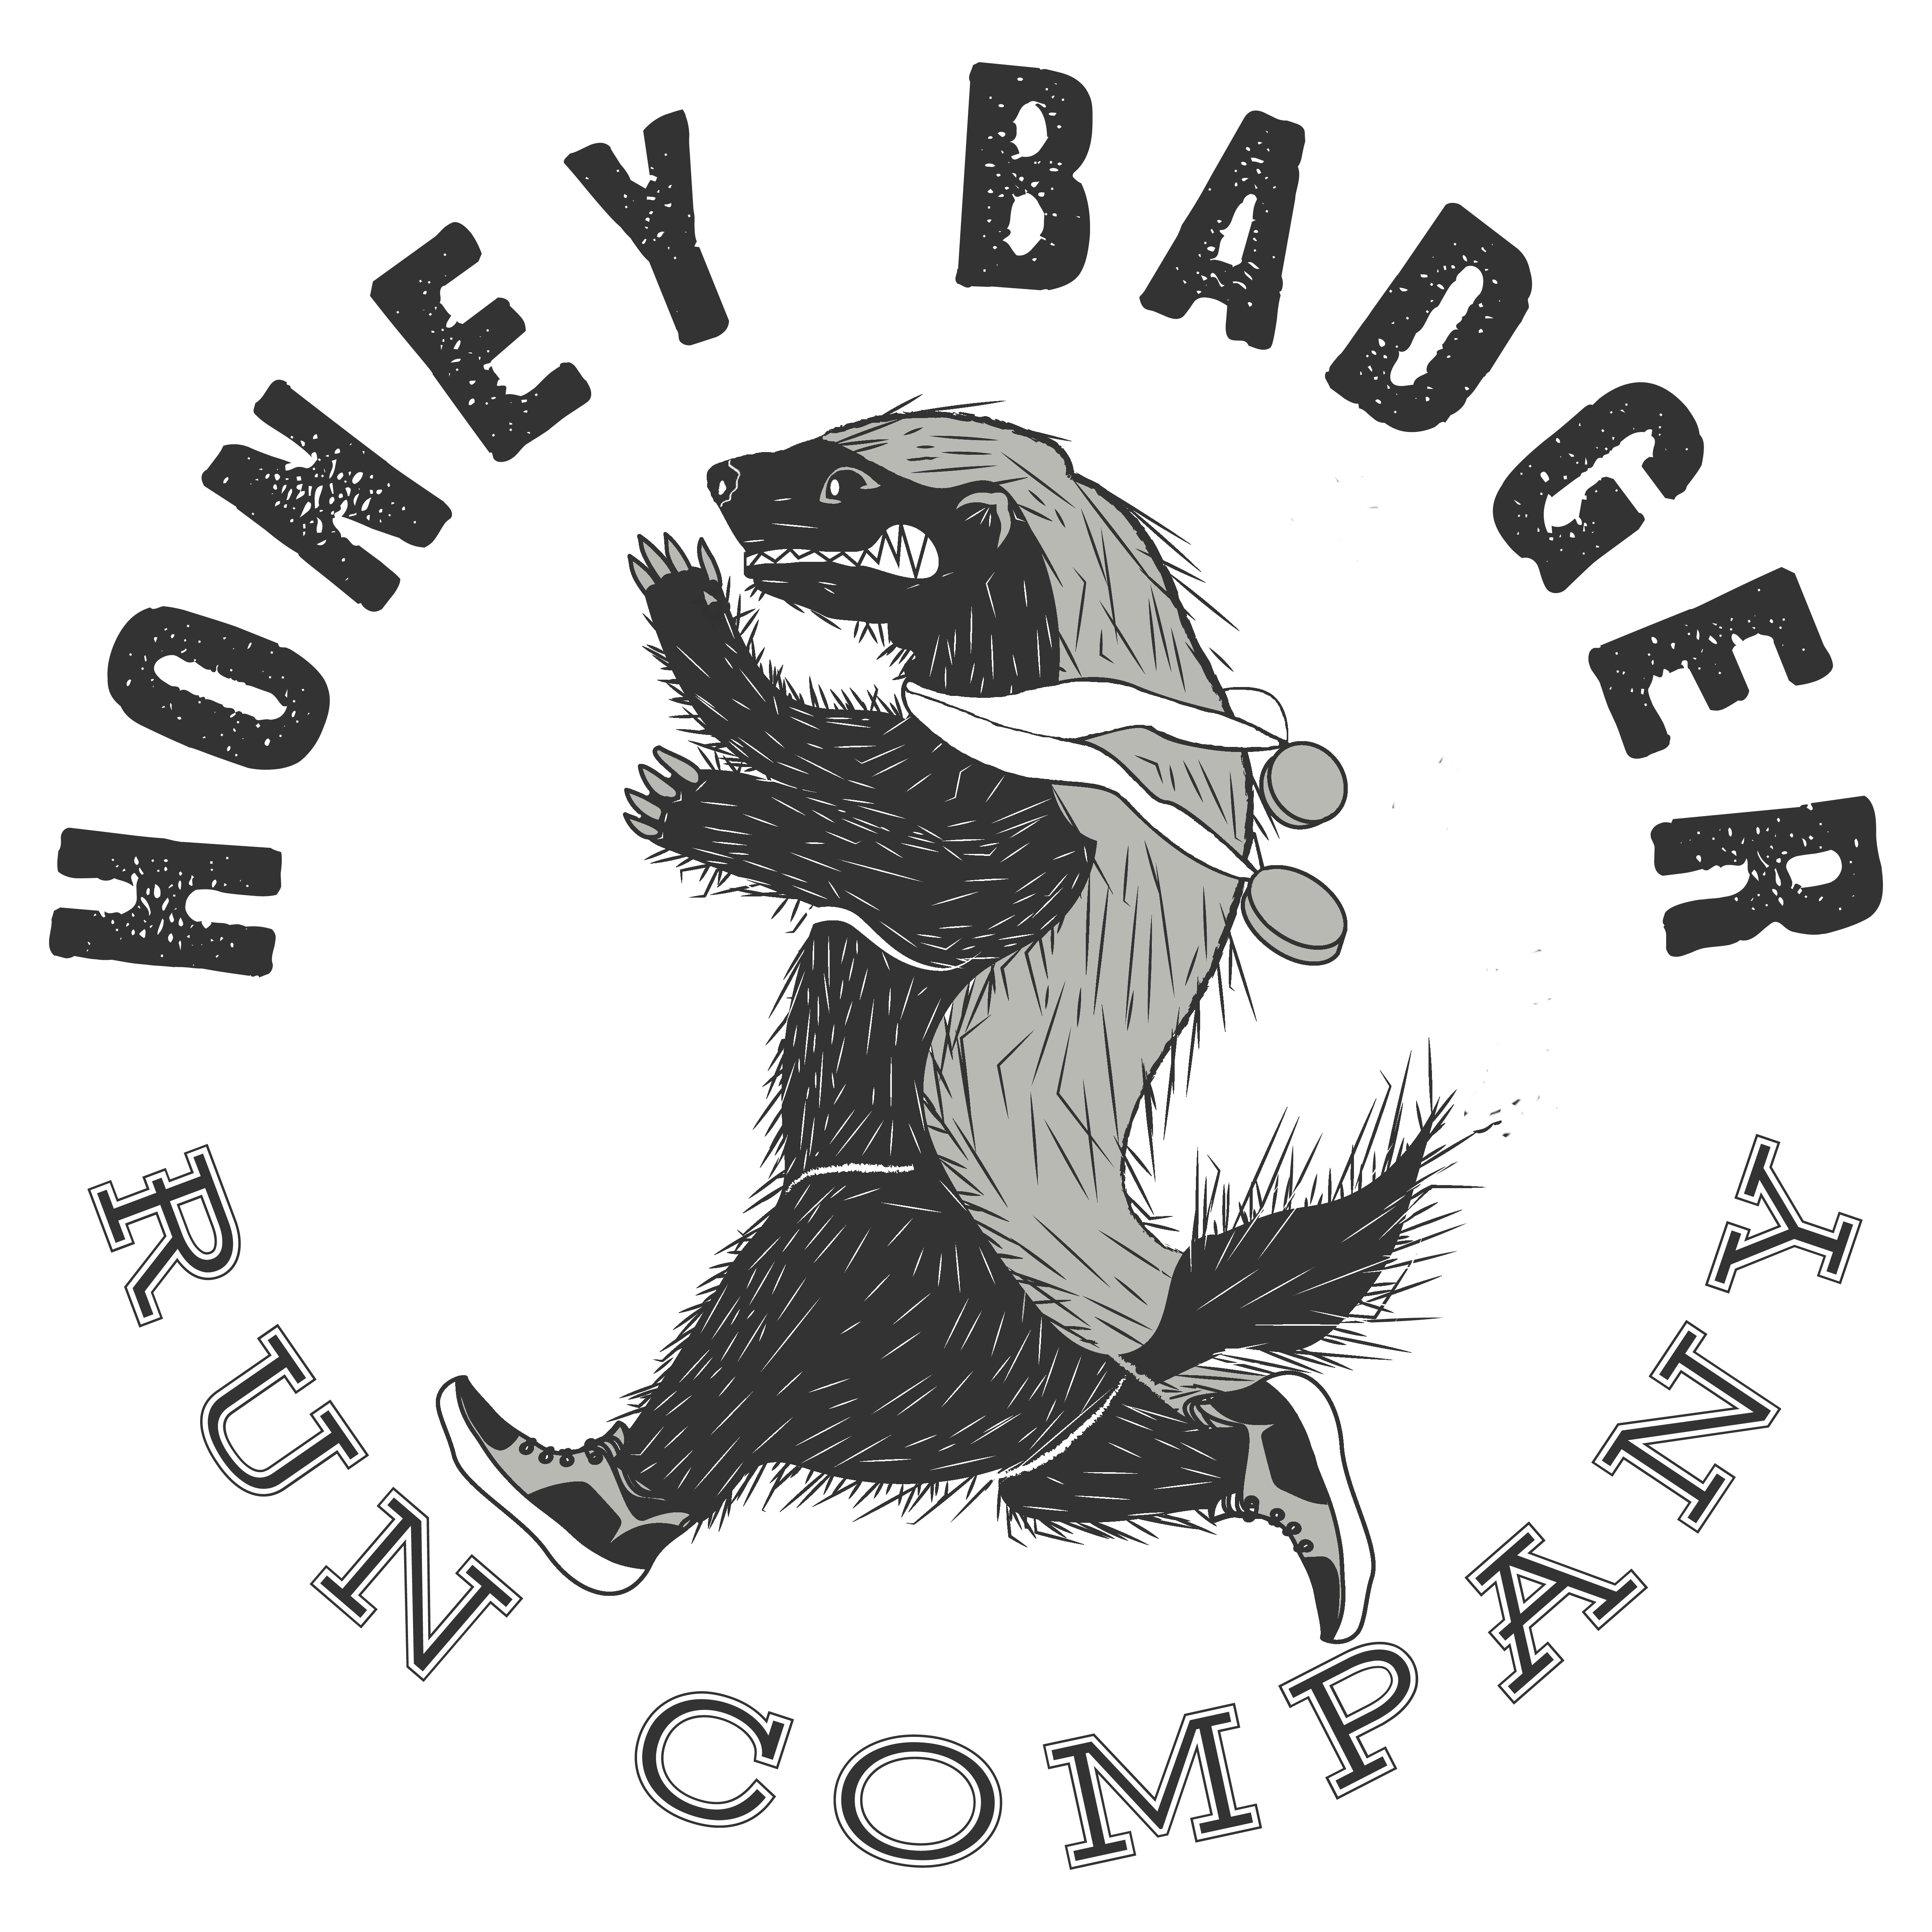 Honey Badger Run Company